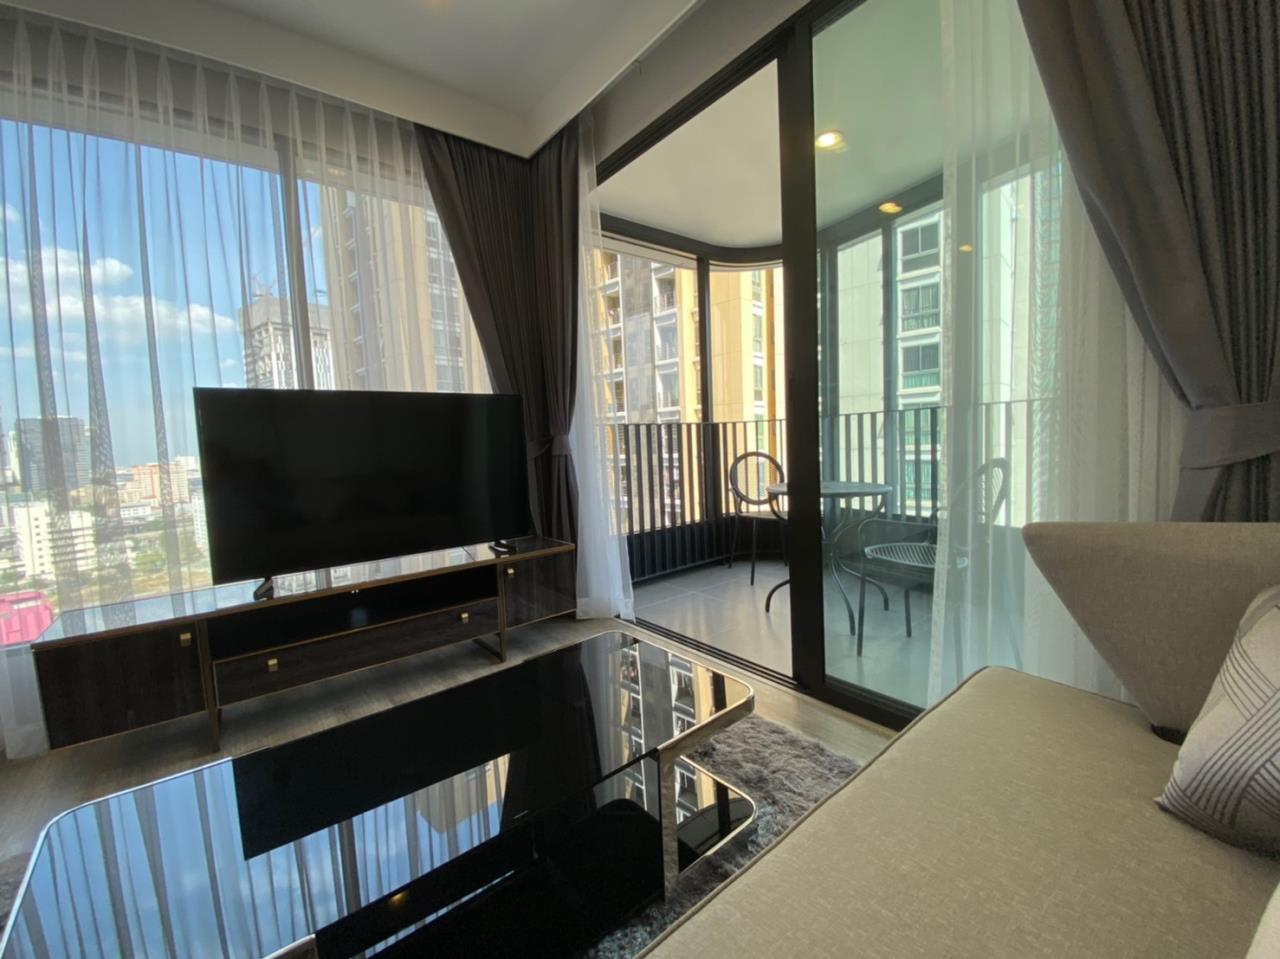 Su Agent Co.,Ltd Agency's BS074 Ideo Mobi Asoke 55 sq.m 2 Bedroom for rent 41,000 Baht/Month 9